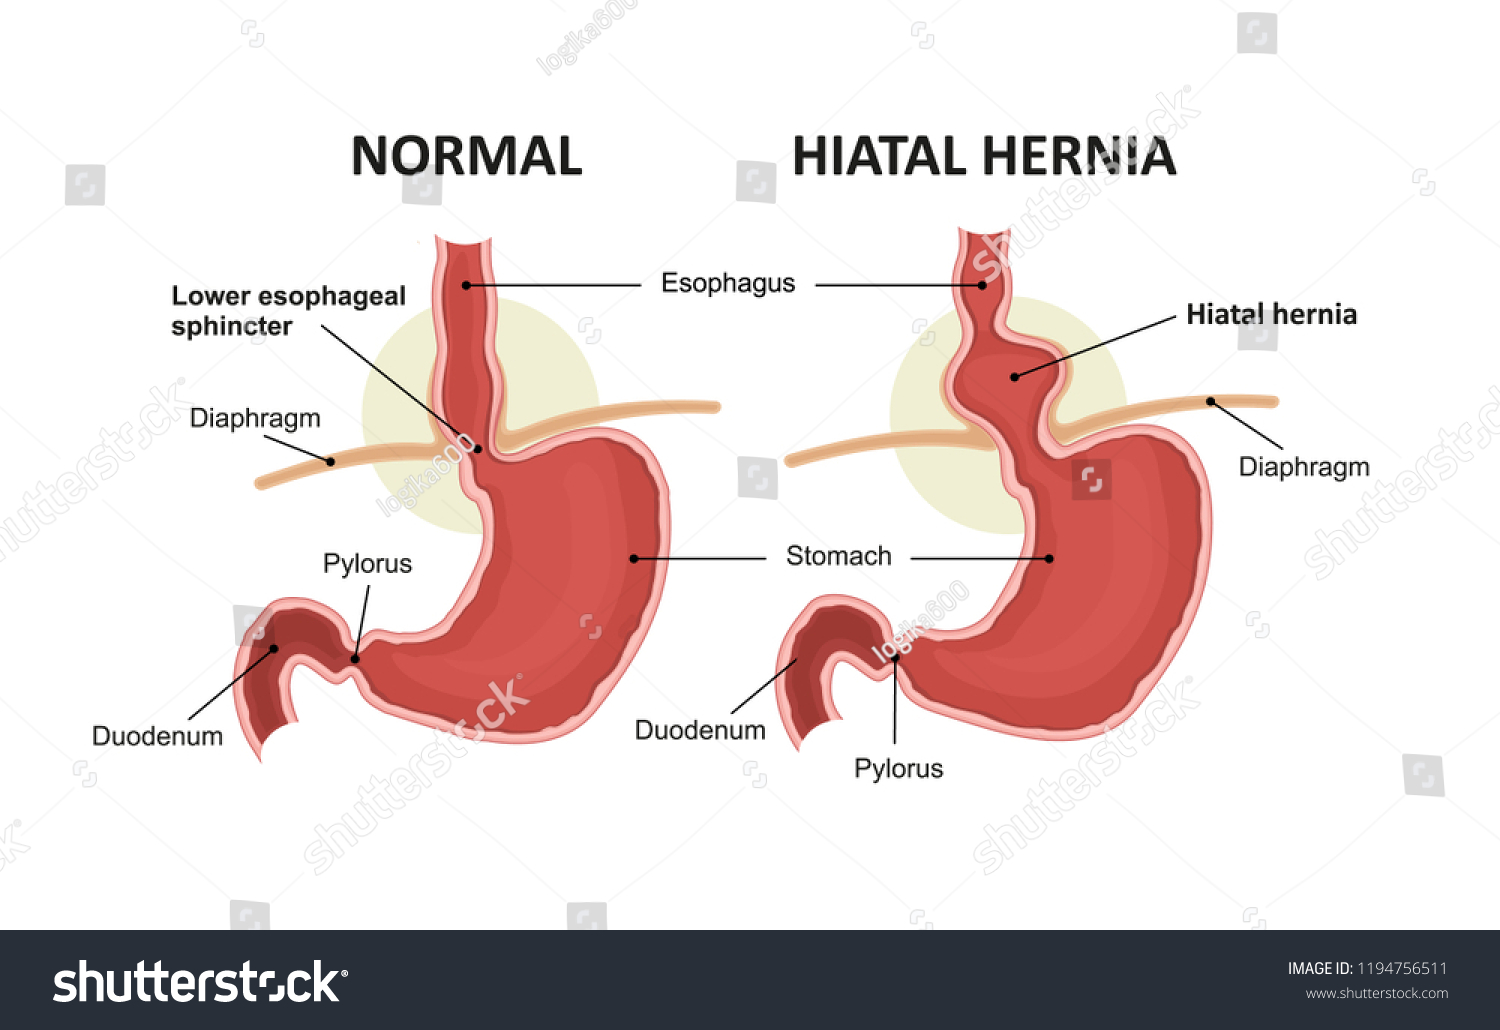 Hiatal Hernia Normal Anatomy Stomach Stock Vector Royalty Free